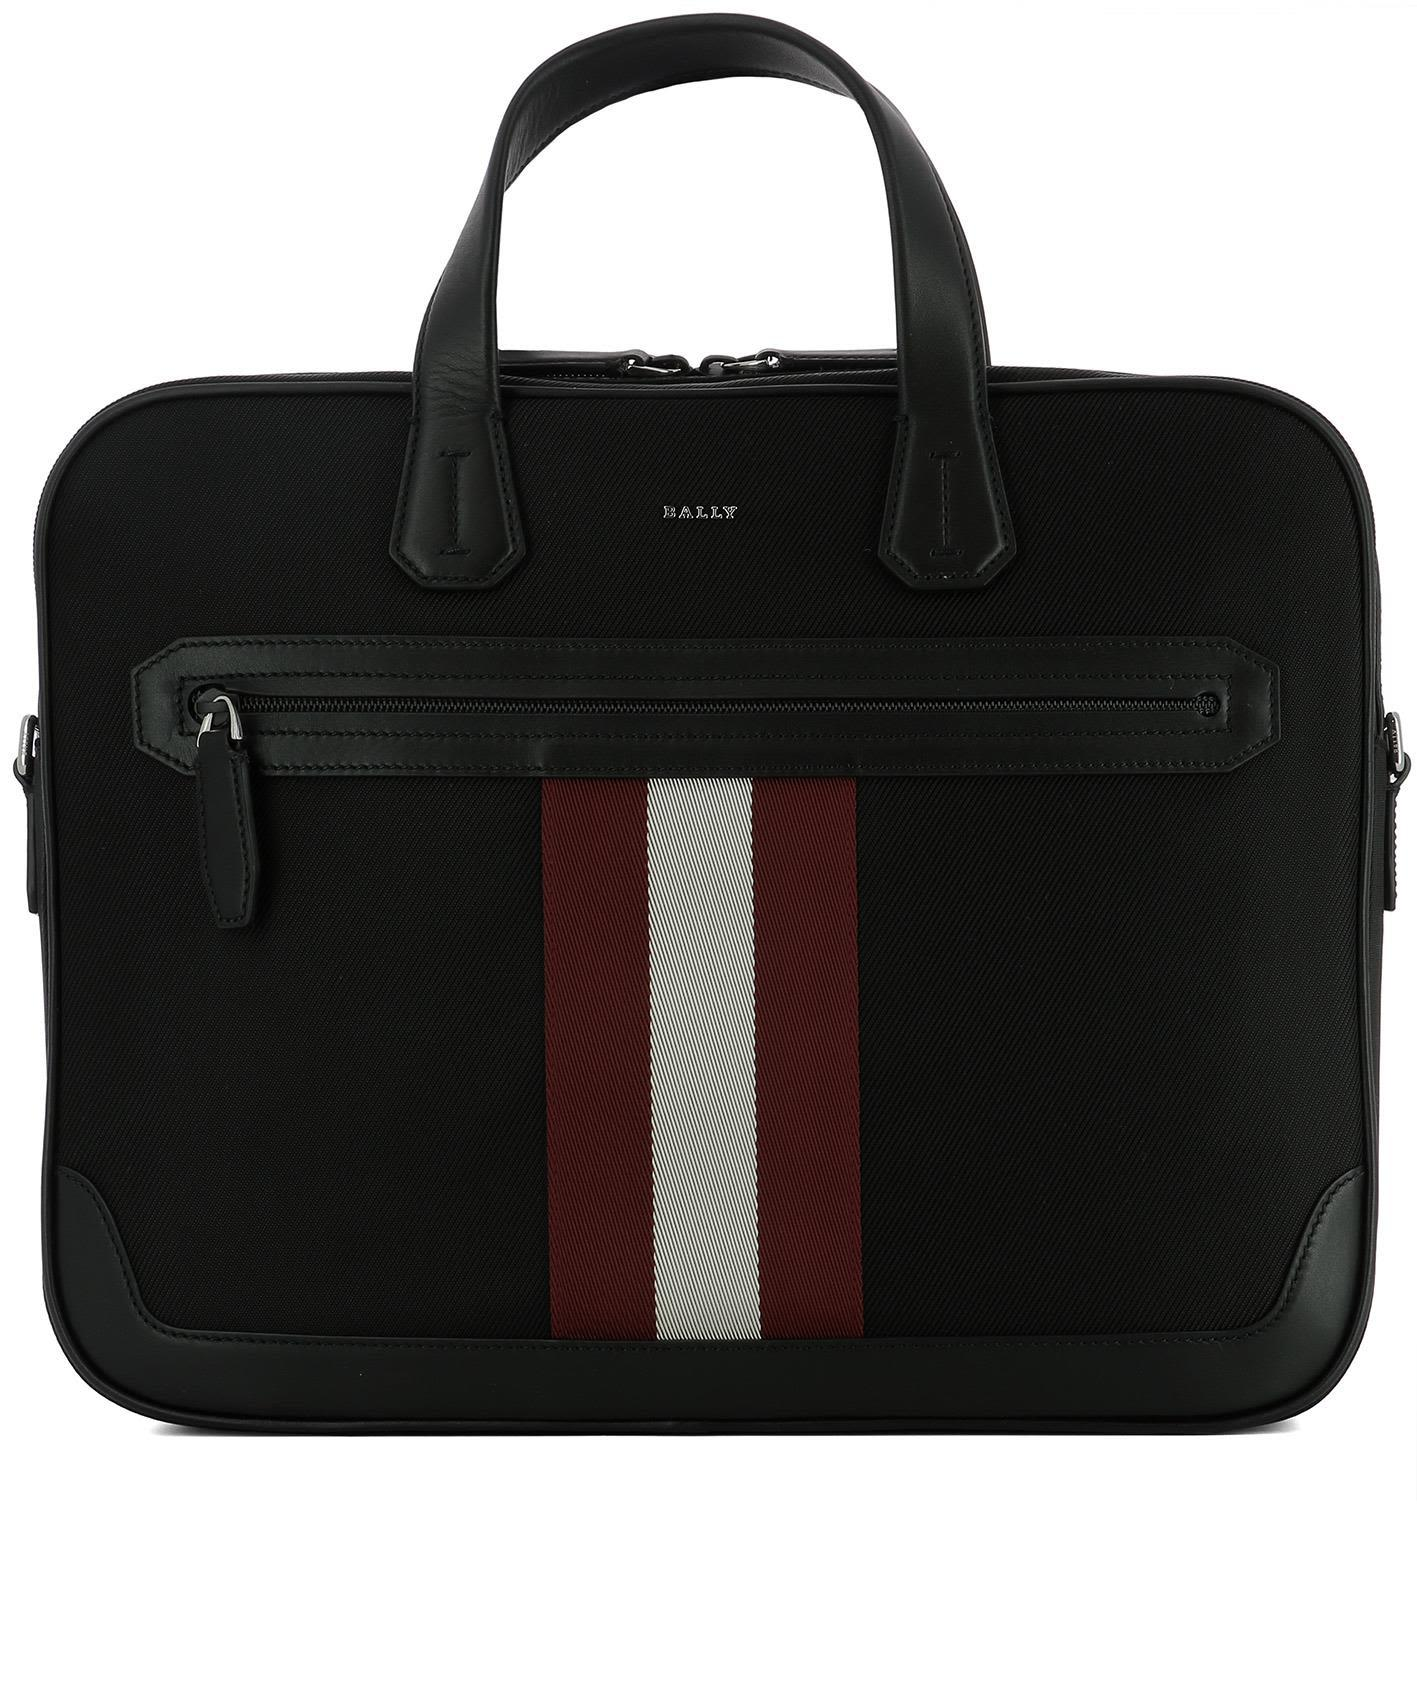 Bally Black Fabric Handle Bag